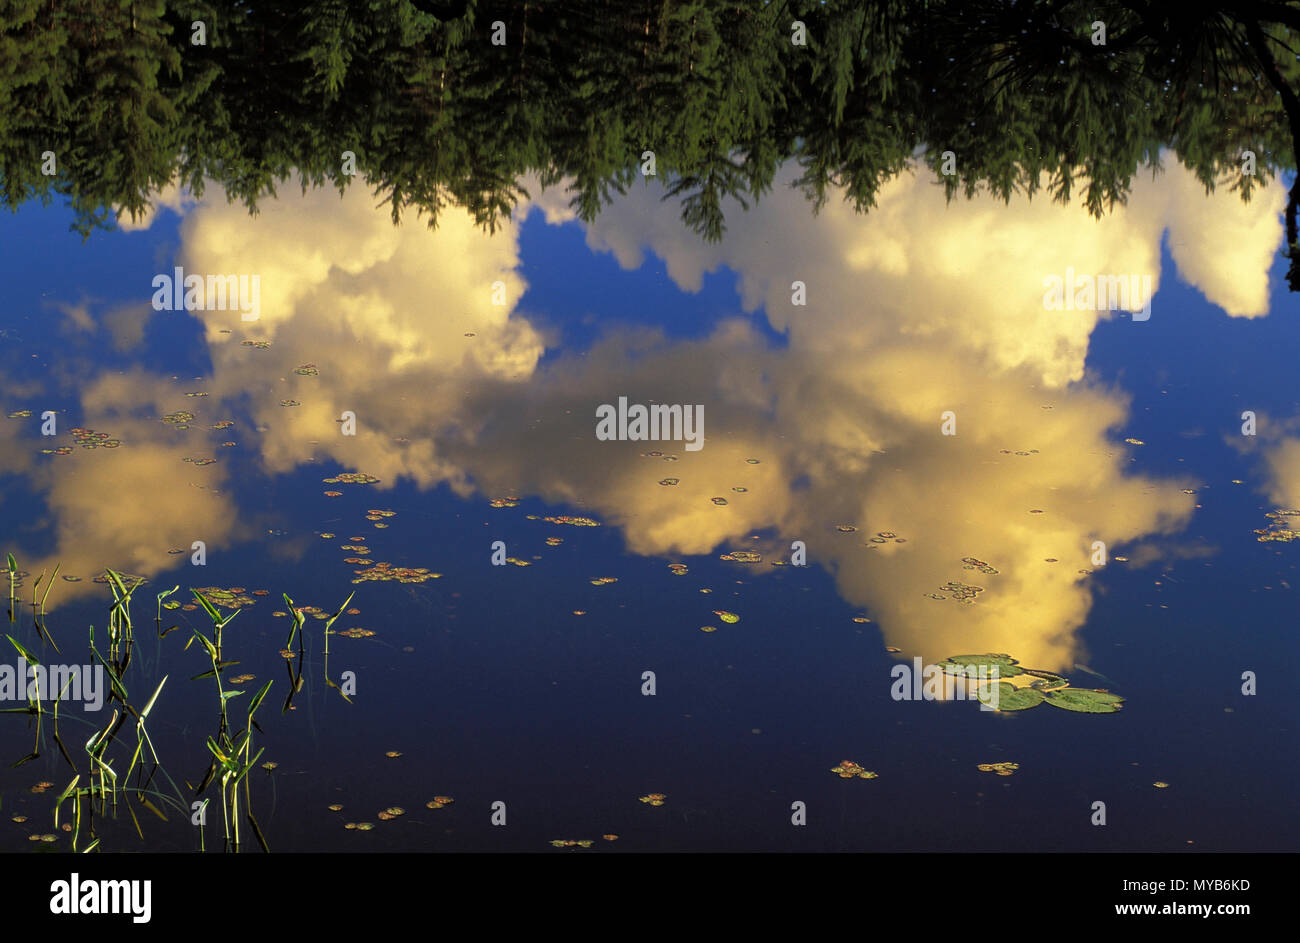 Scenic scene with clouds reflected in a lake with water-lilies, Algonquin National Park, Ontario, Canada Stock Photo